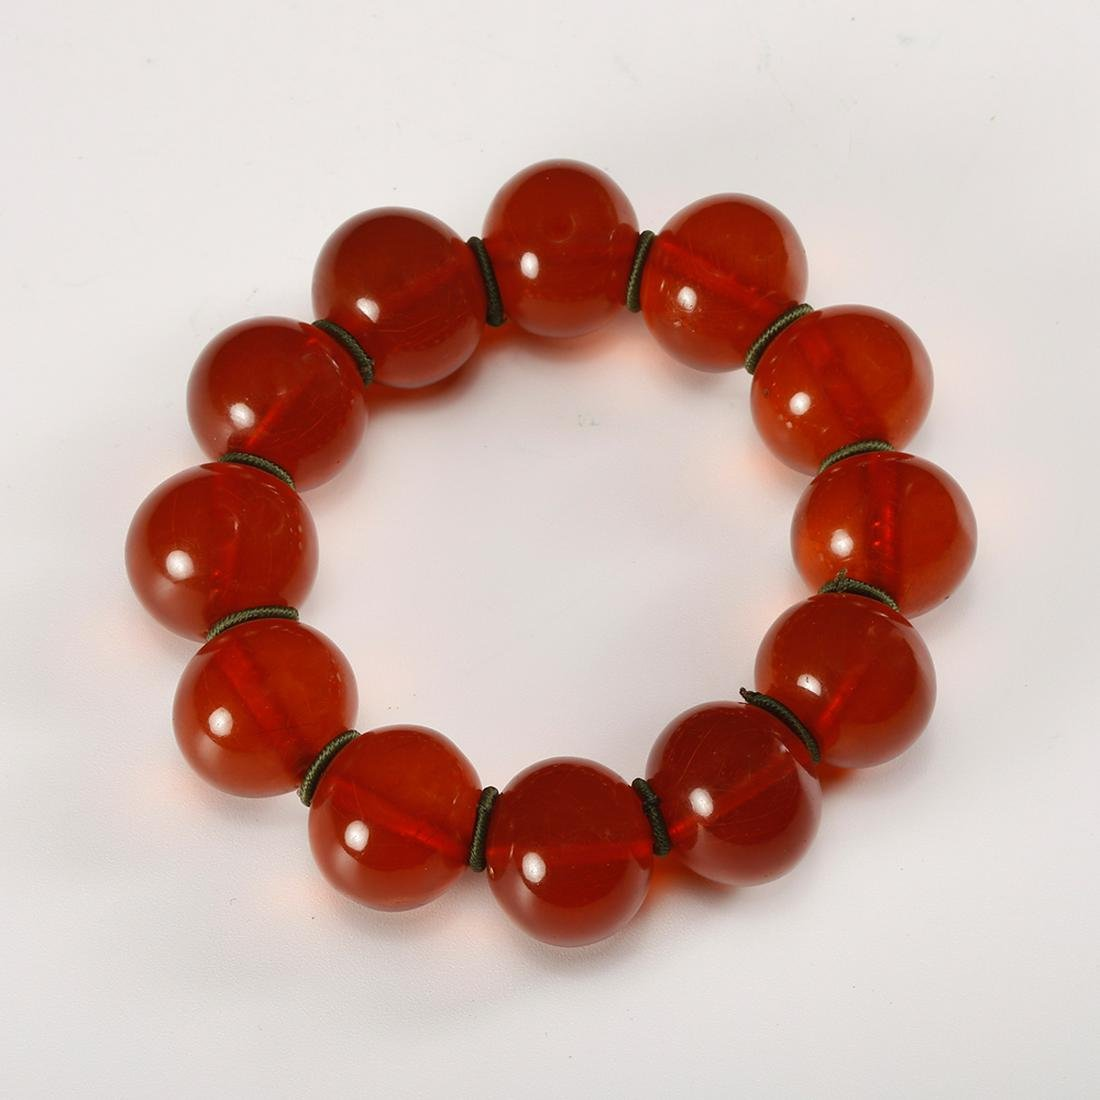 CHINESE AGATE BEADS BRACELET